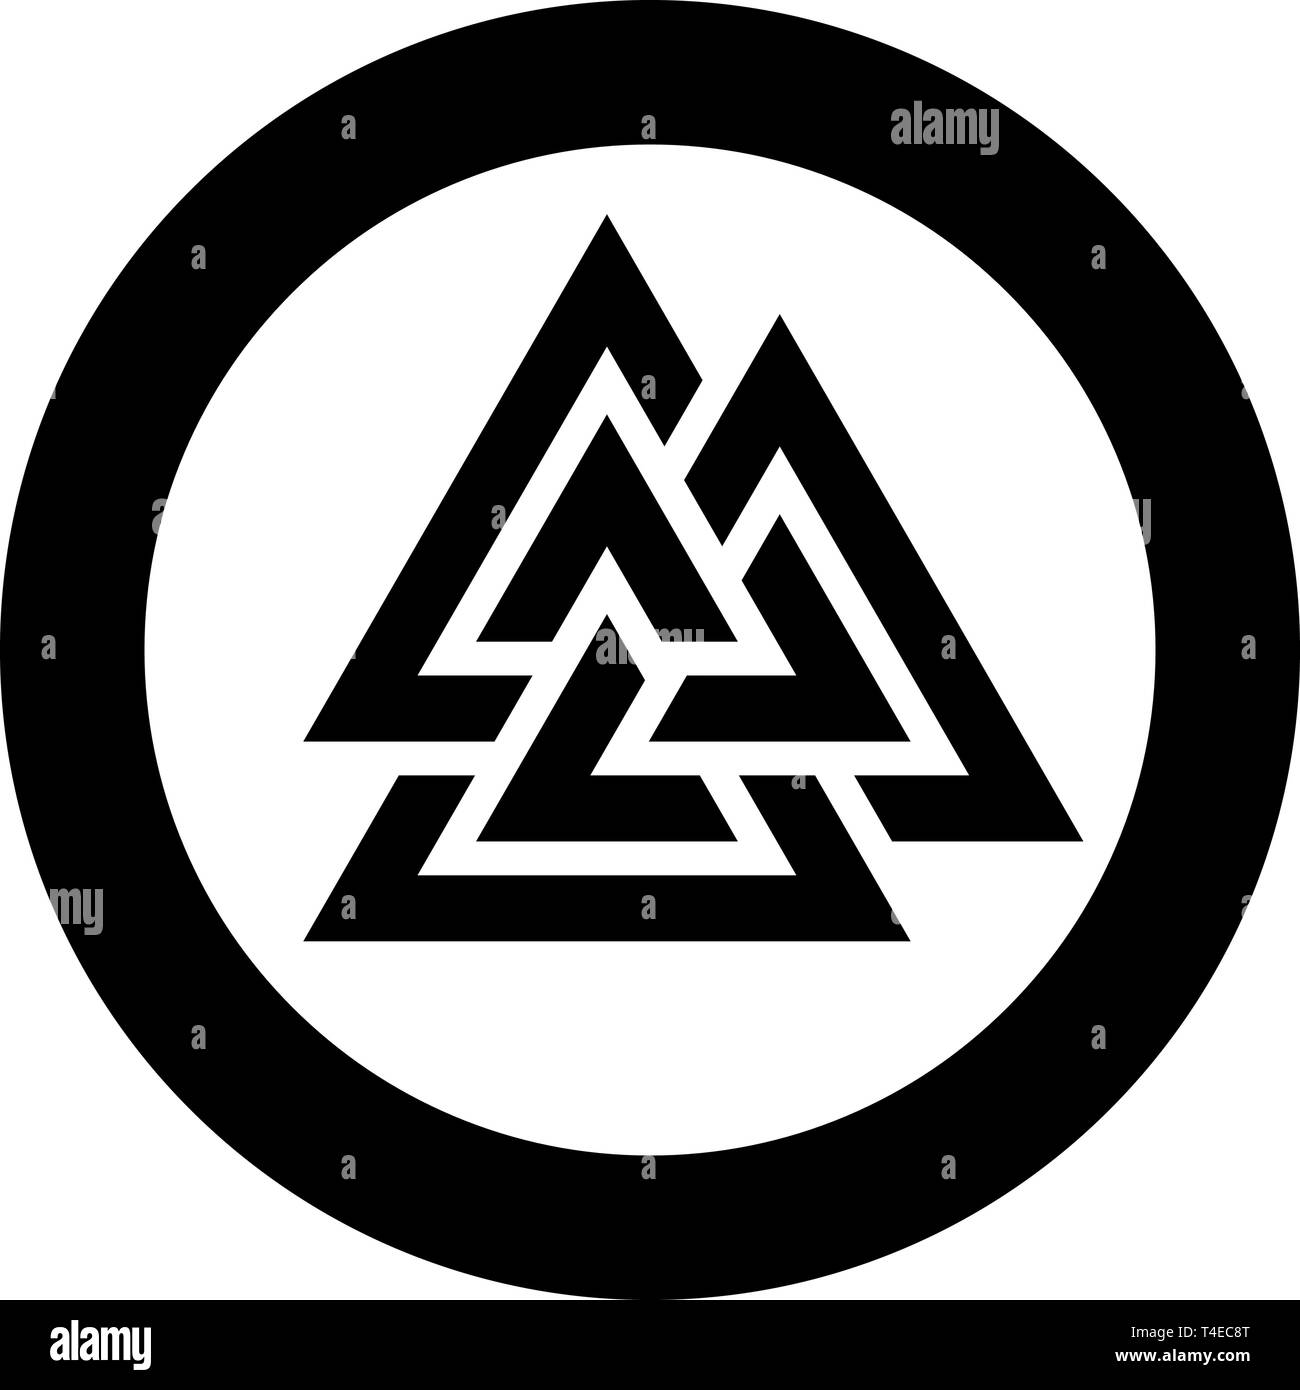 Valknut symbol icon in circle round black color vector illustration flat style simple image - Stock Image